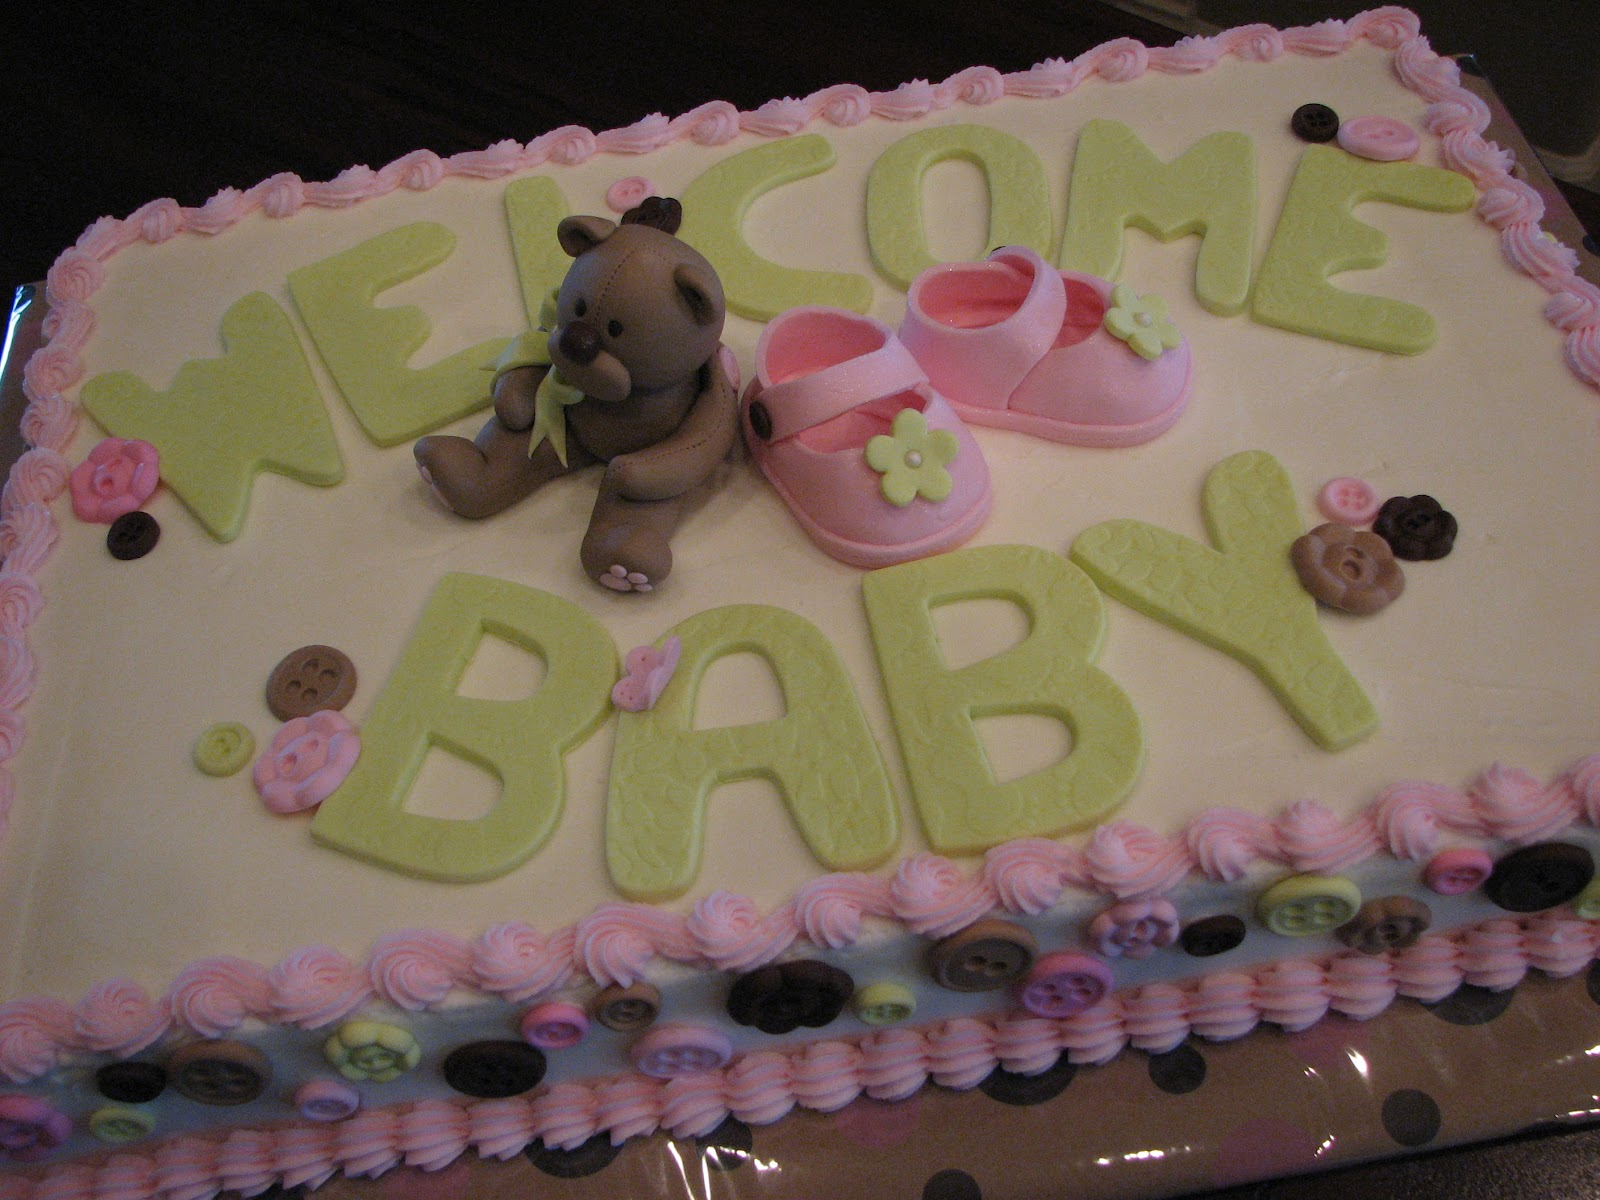 Baby Shower Sheet Cake. Posted By Decadent Designs   Celebrate Life With  Cake! At 7:55 PM